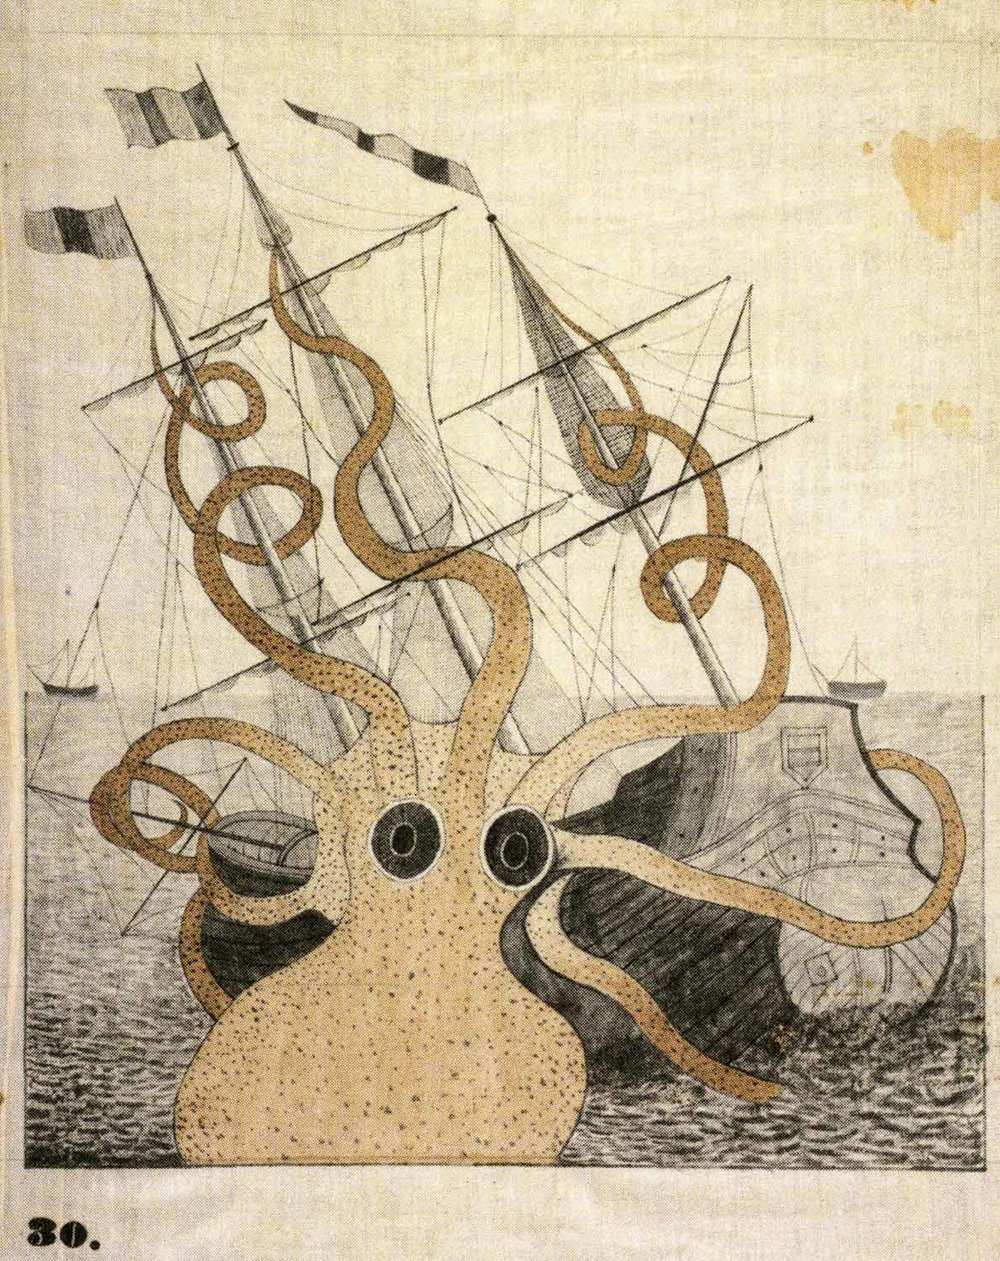 Colossal Octopus [after P. D. deMontfort],  1828-40